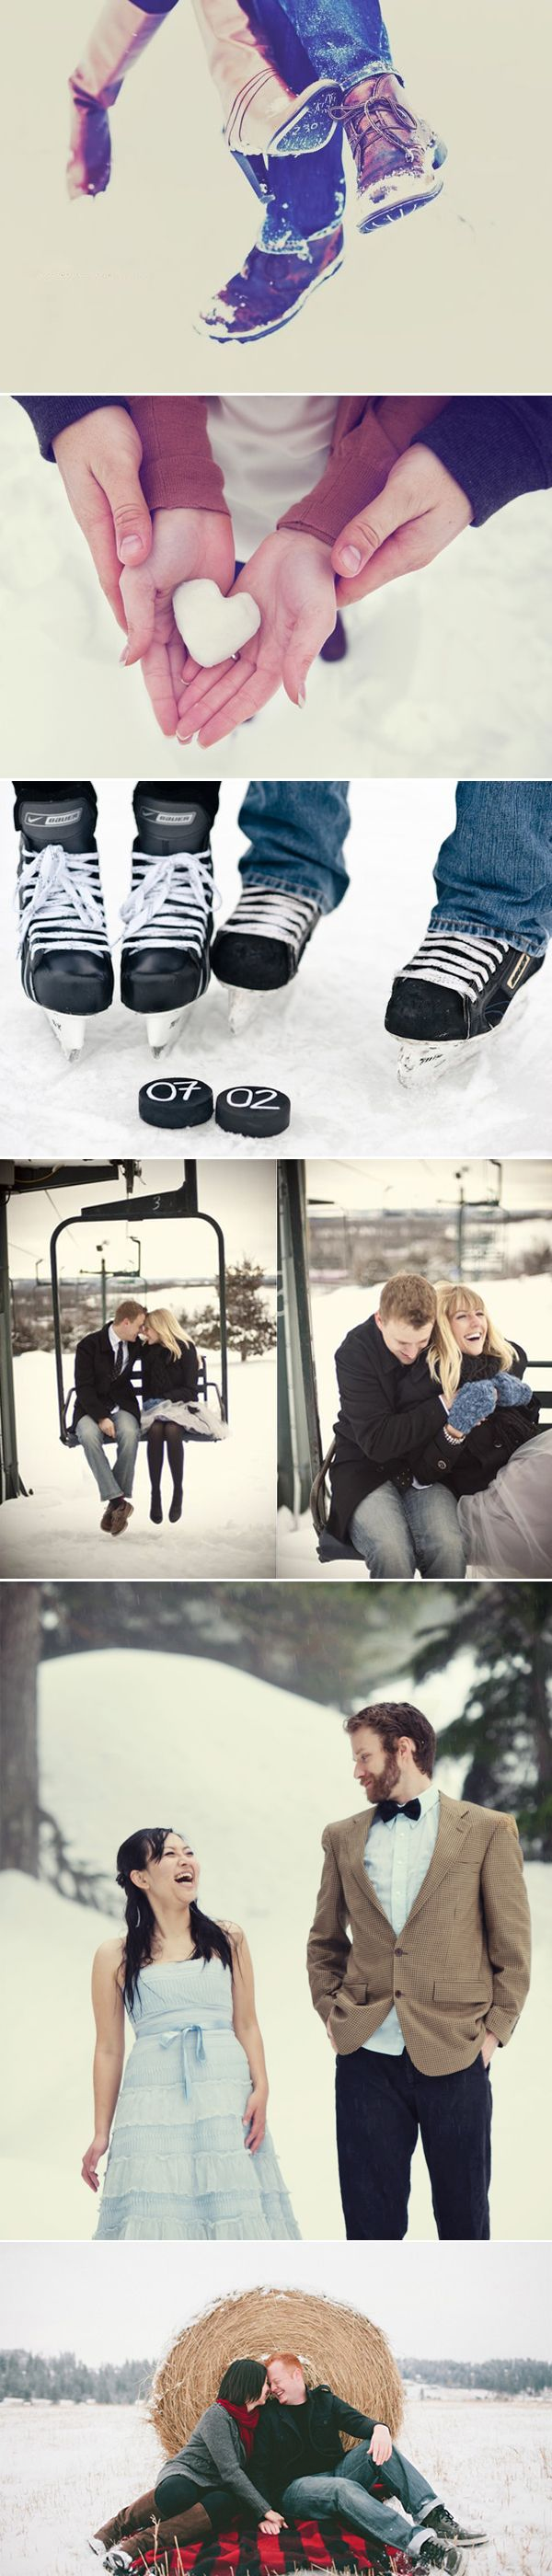 Inspiring Winter Engagement Sessions featured on Praise Wedding Inspirations - Wonderful collection - click through for info on photographers